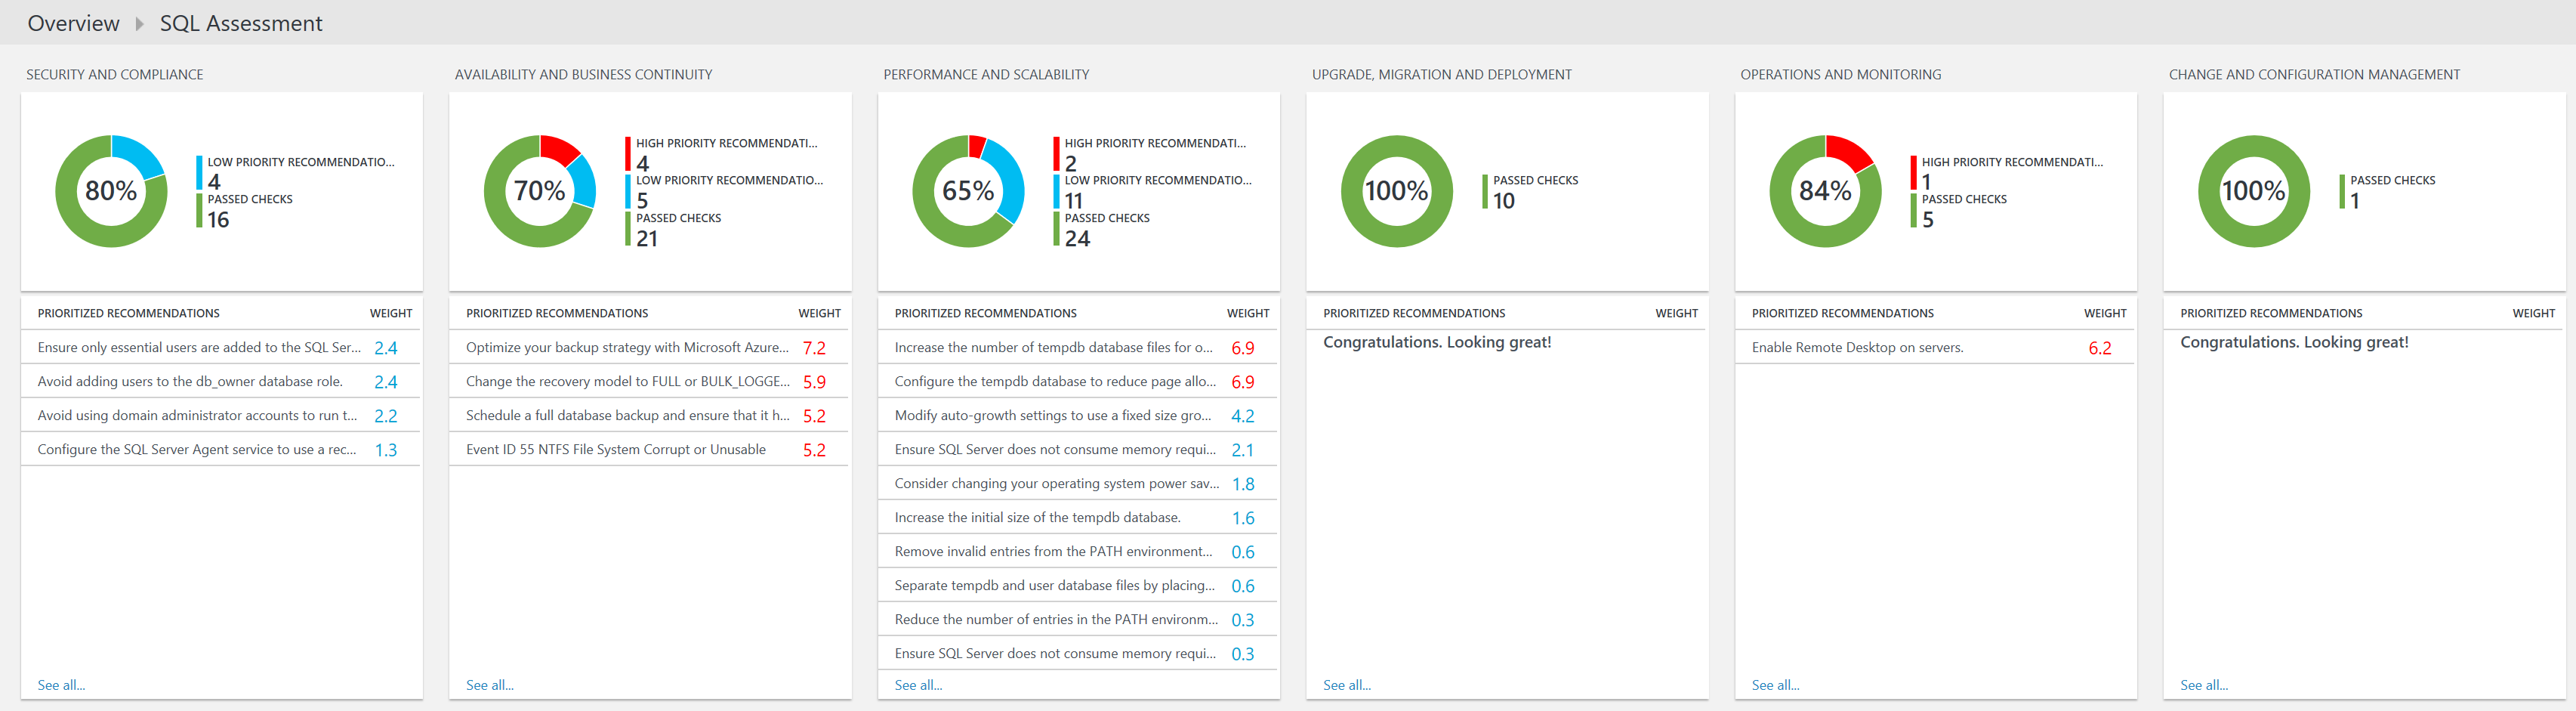 OMS - SQL Assessment Dashboard